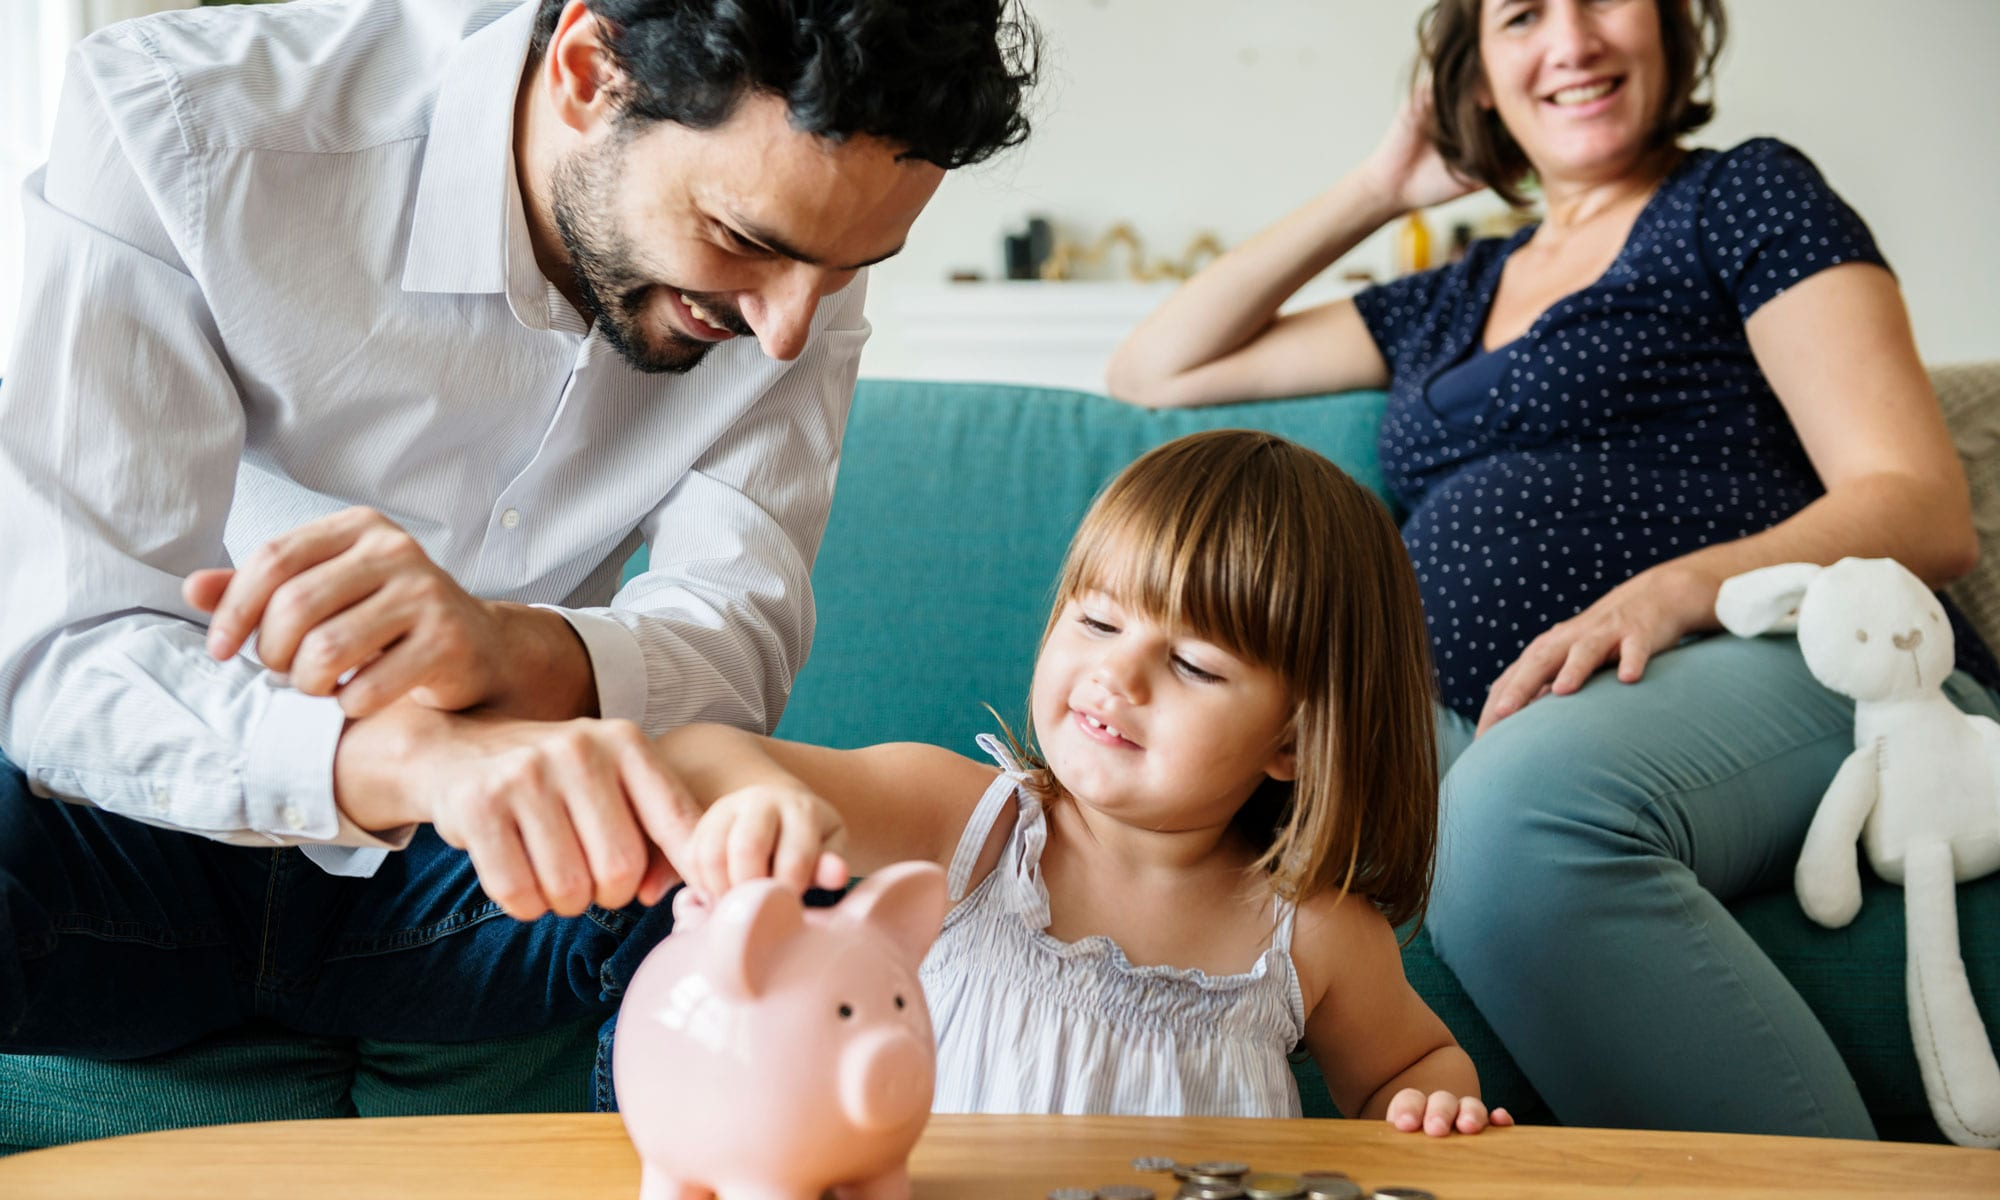 Father shows his daughter how to save money with a piggy bank.